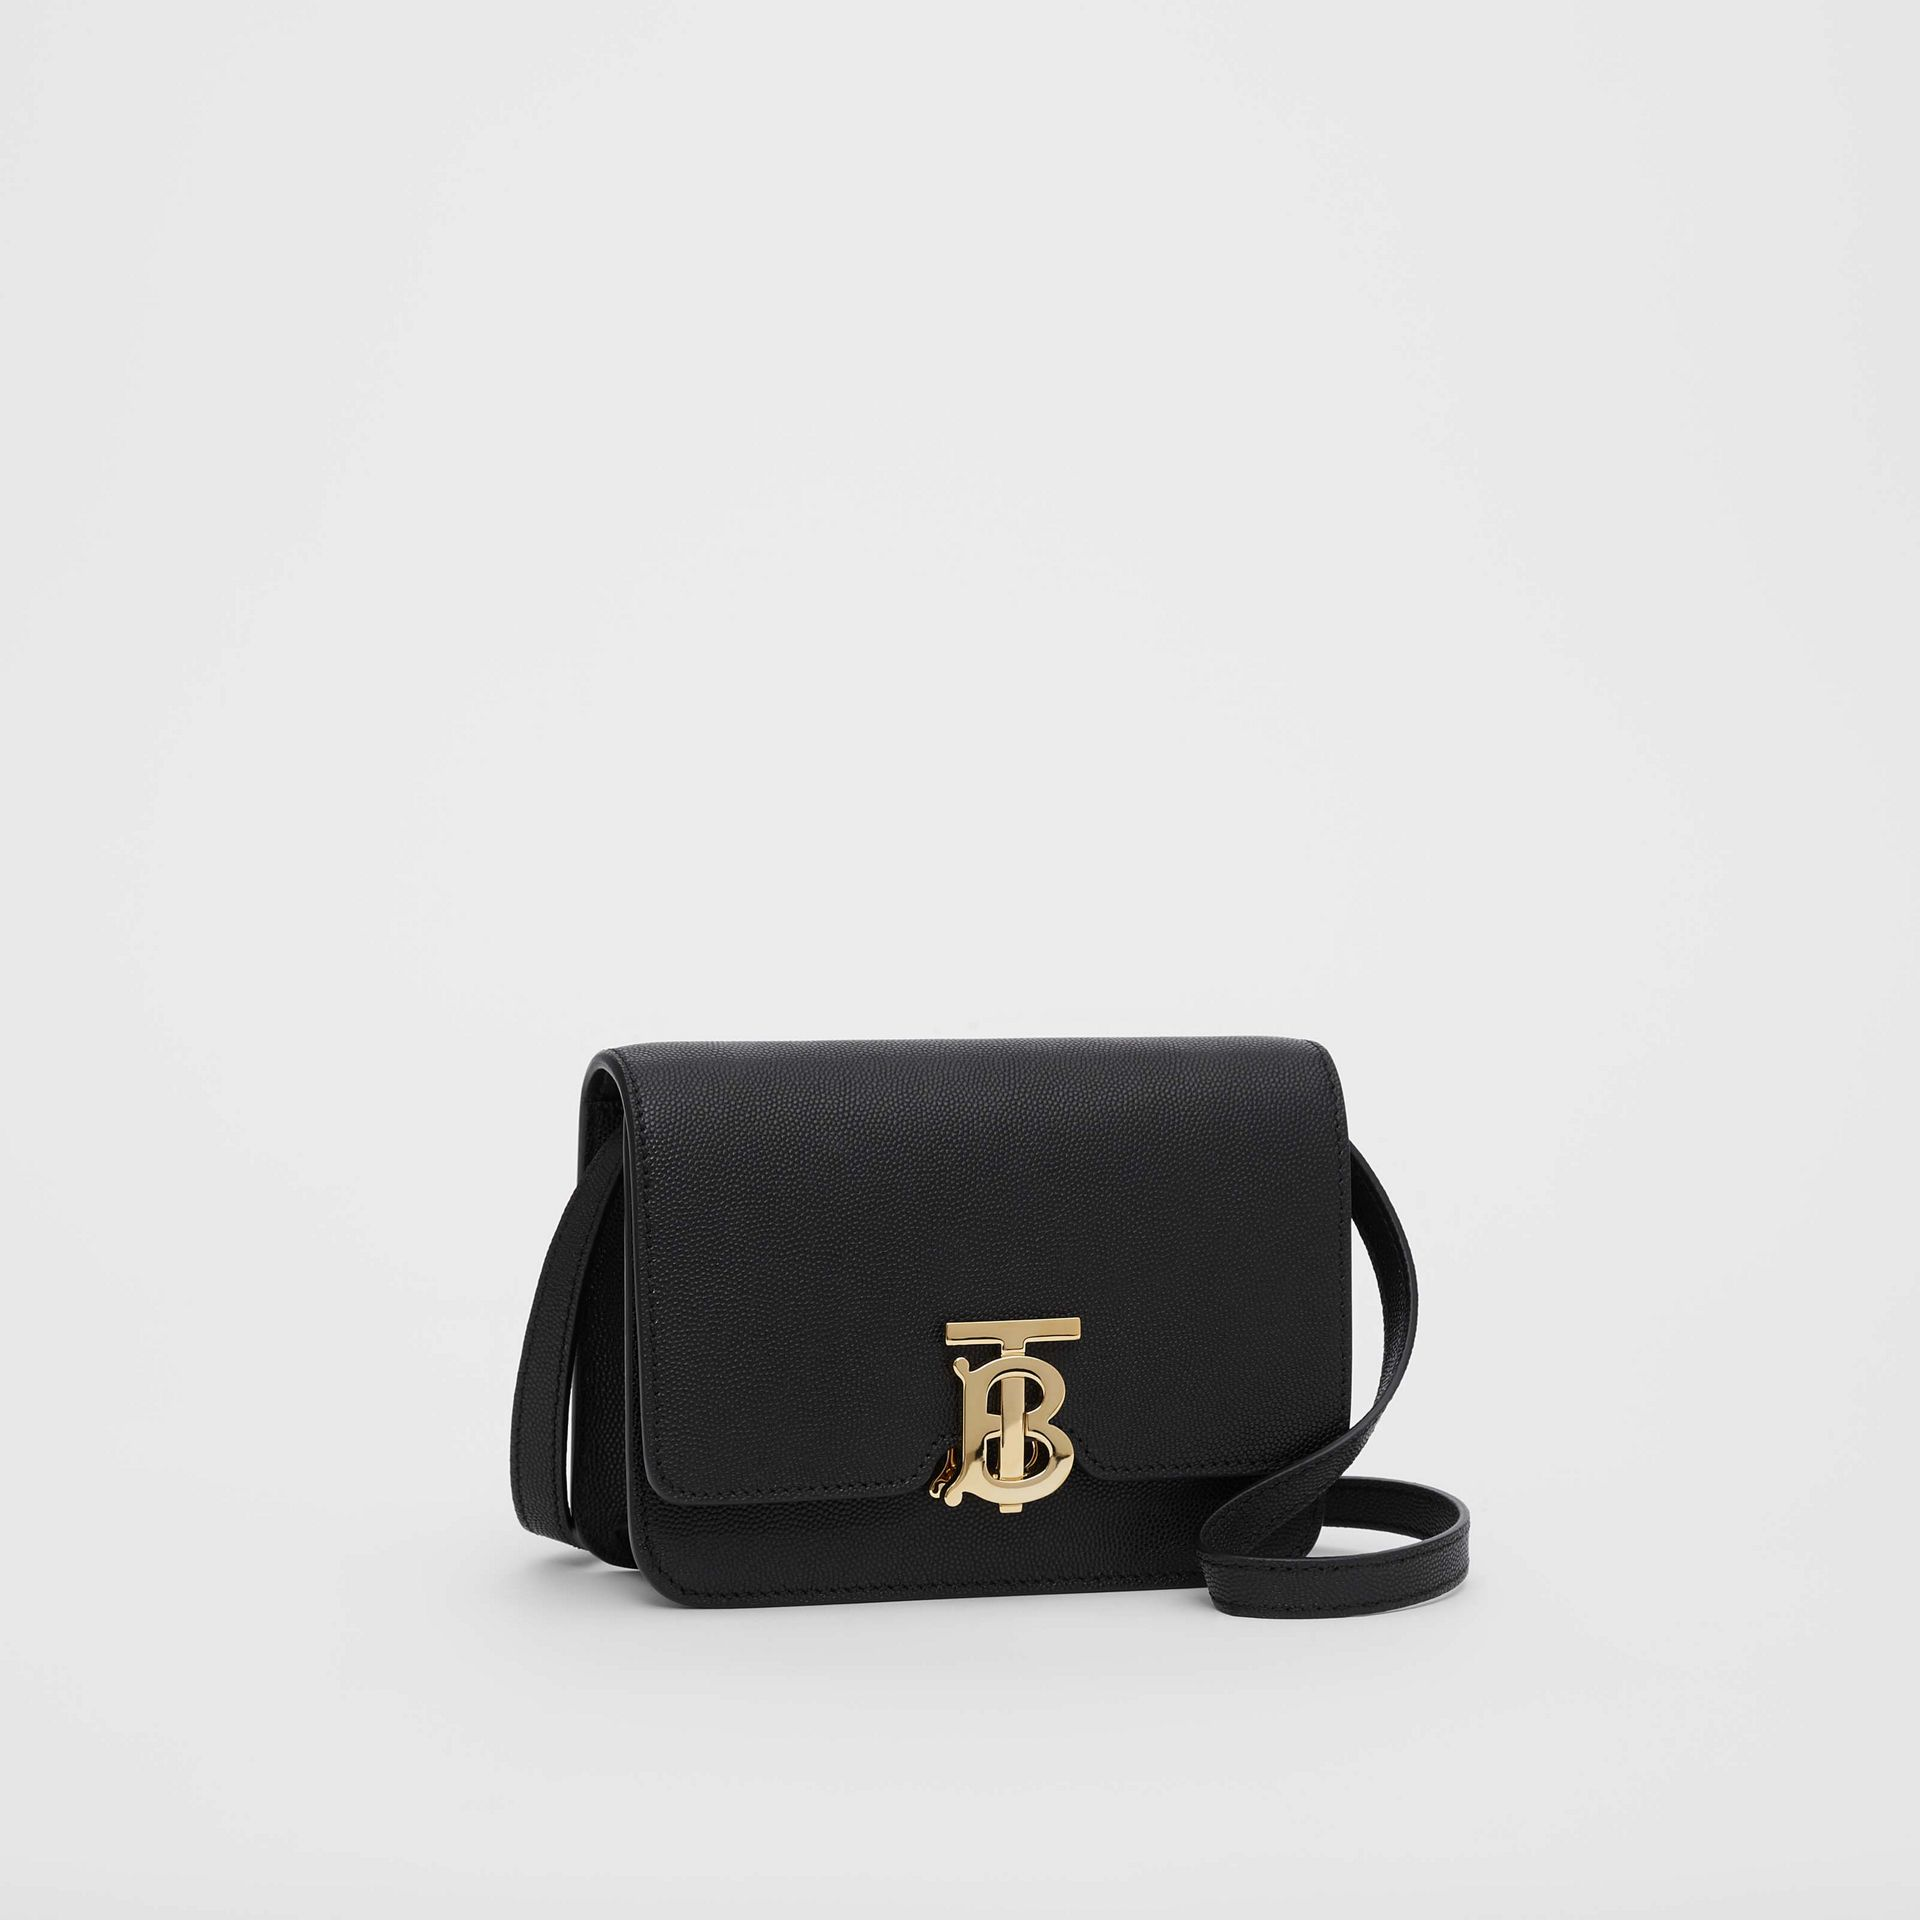 Mini Grainy Leather TB Bag in Black - Women | Burberry - gallery image 6